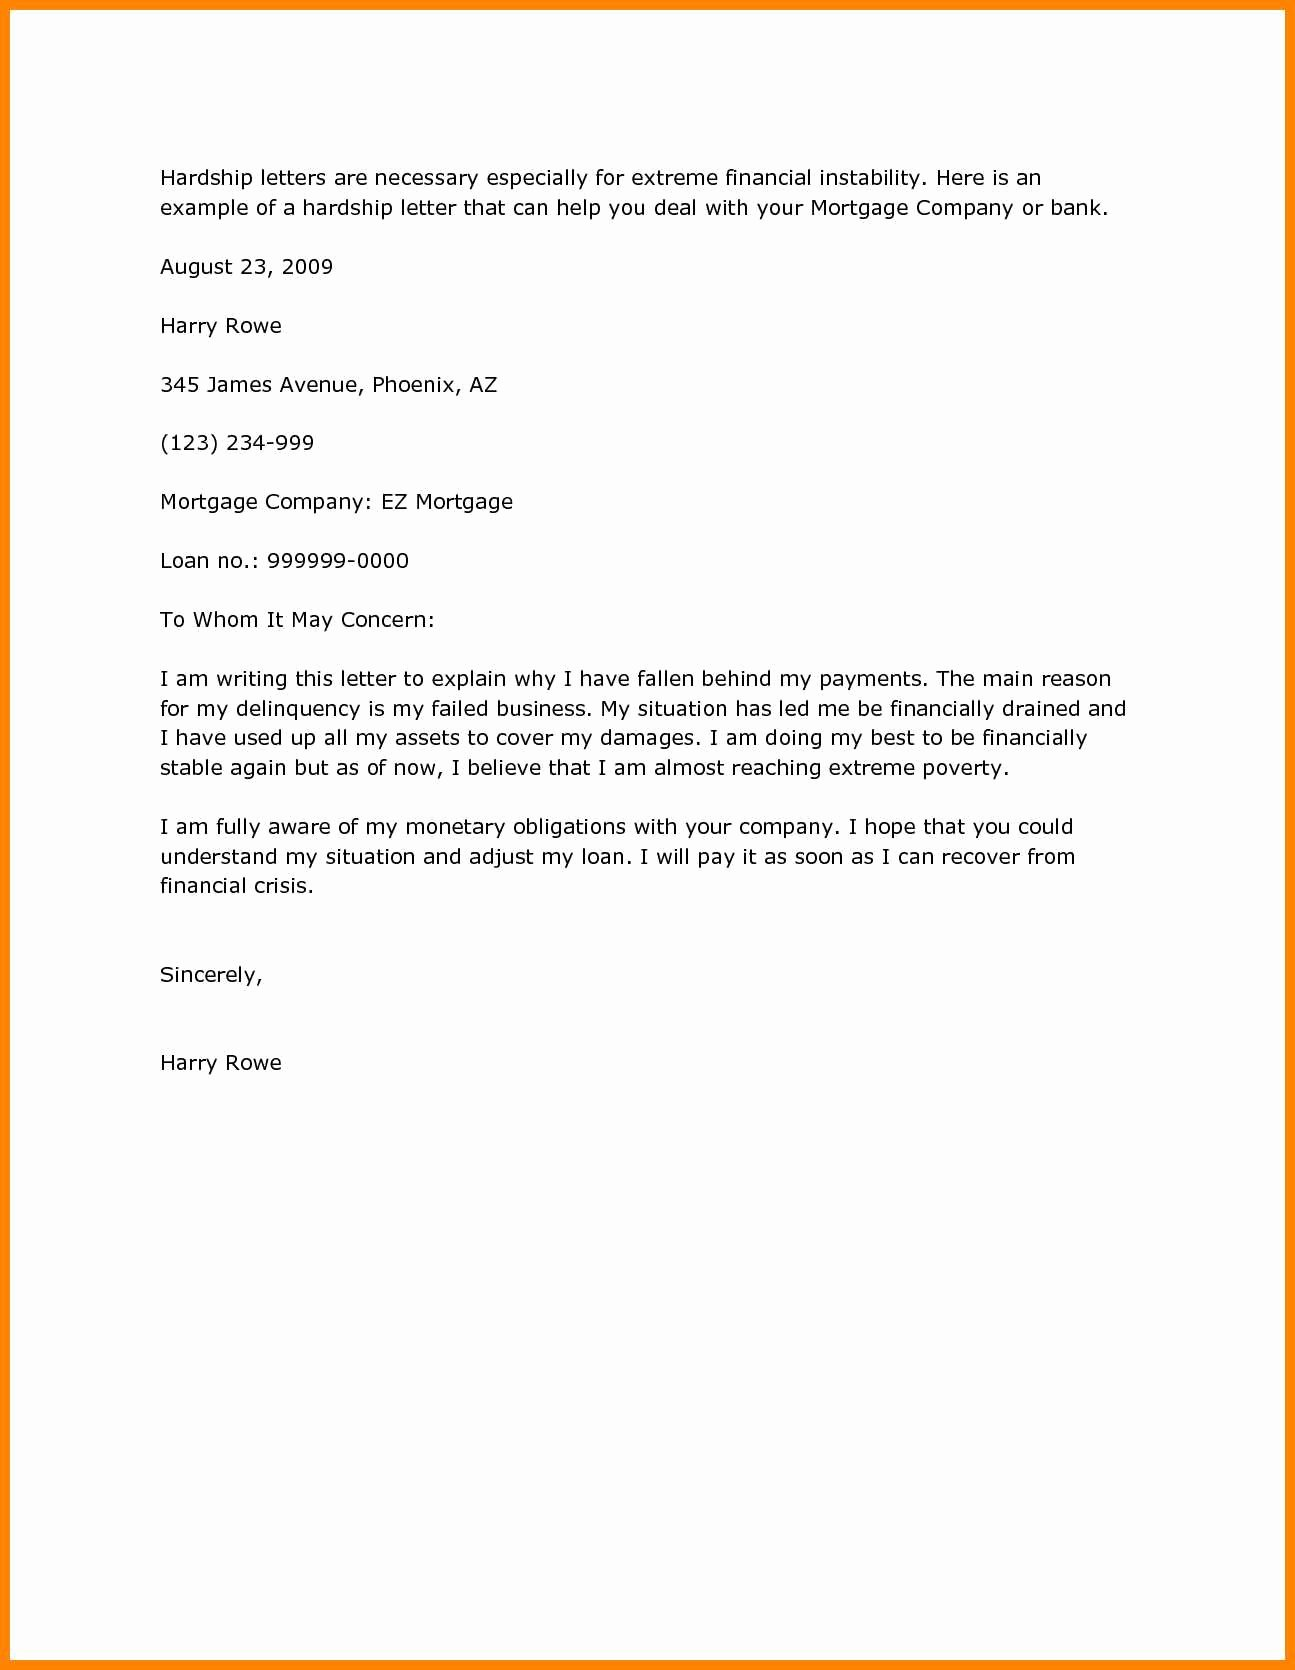 Immigration Hardship Letter format New 16 Extreme Hardship Letter